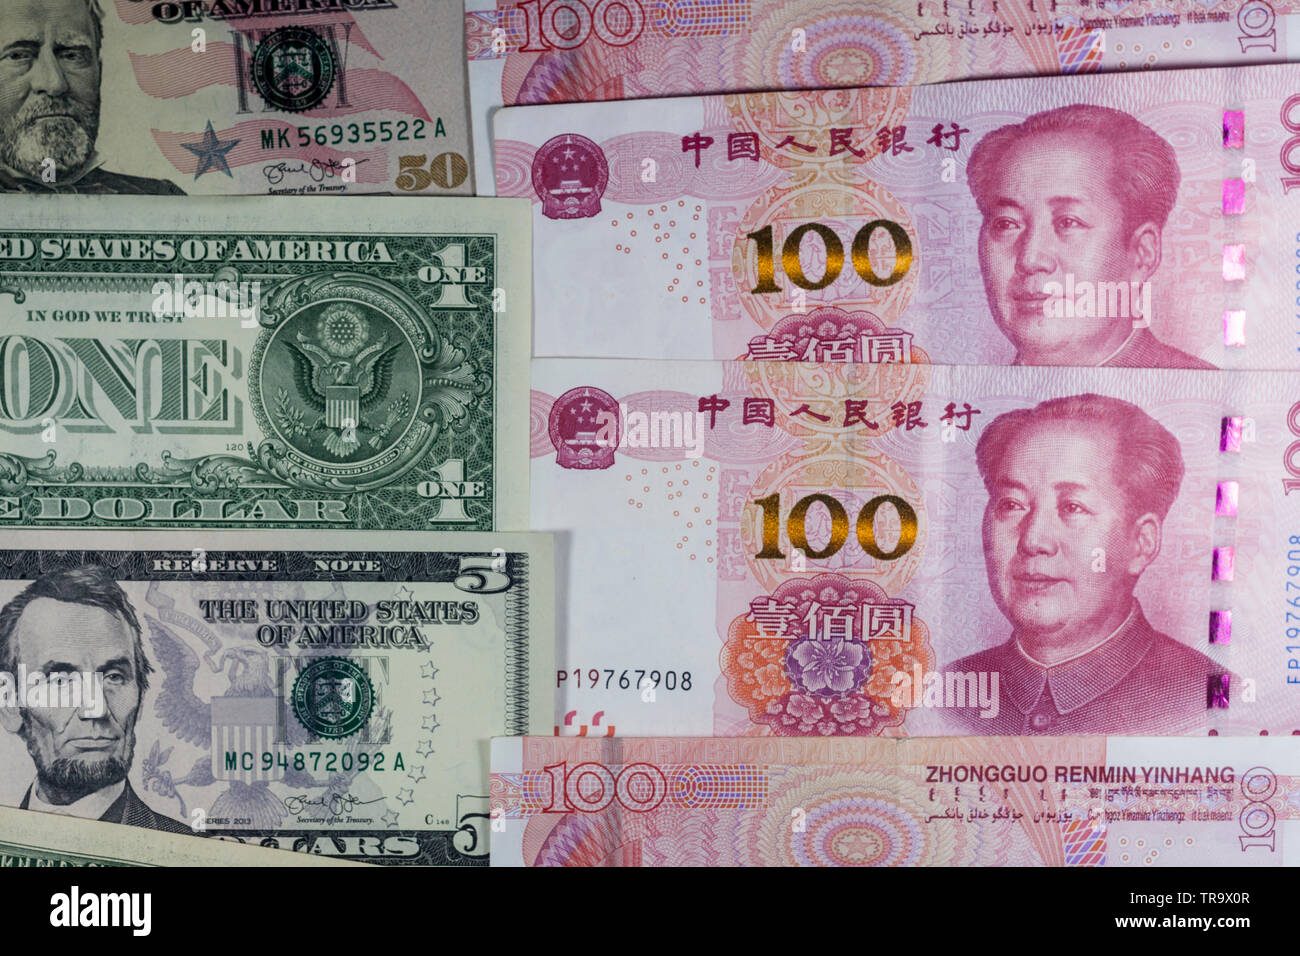 US and China trading currencies - Stock Image